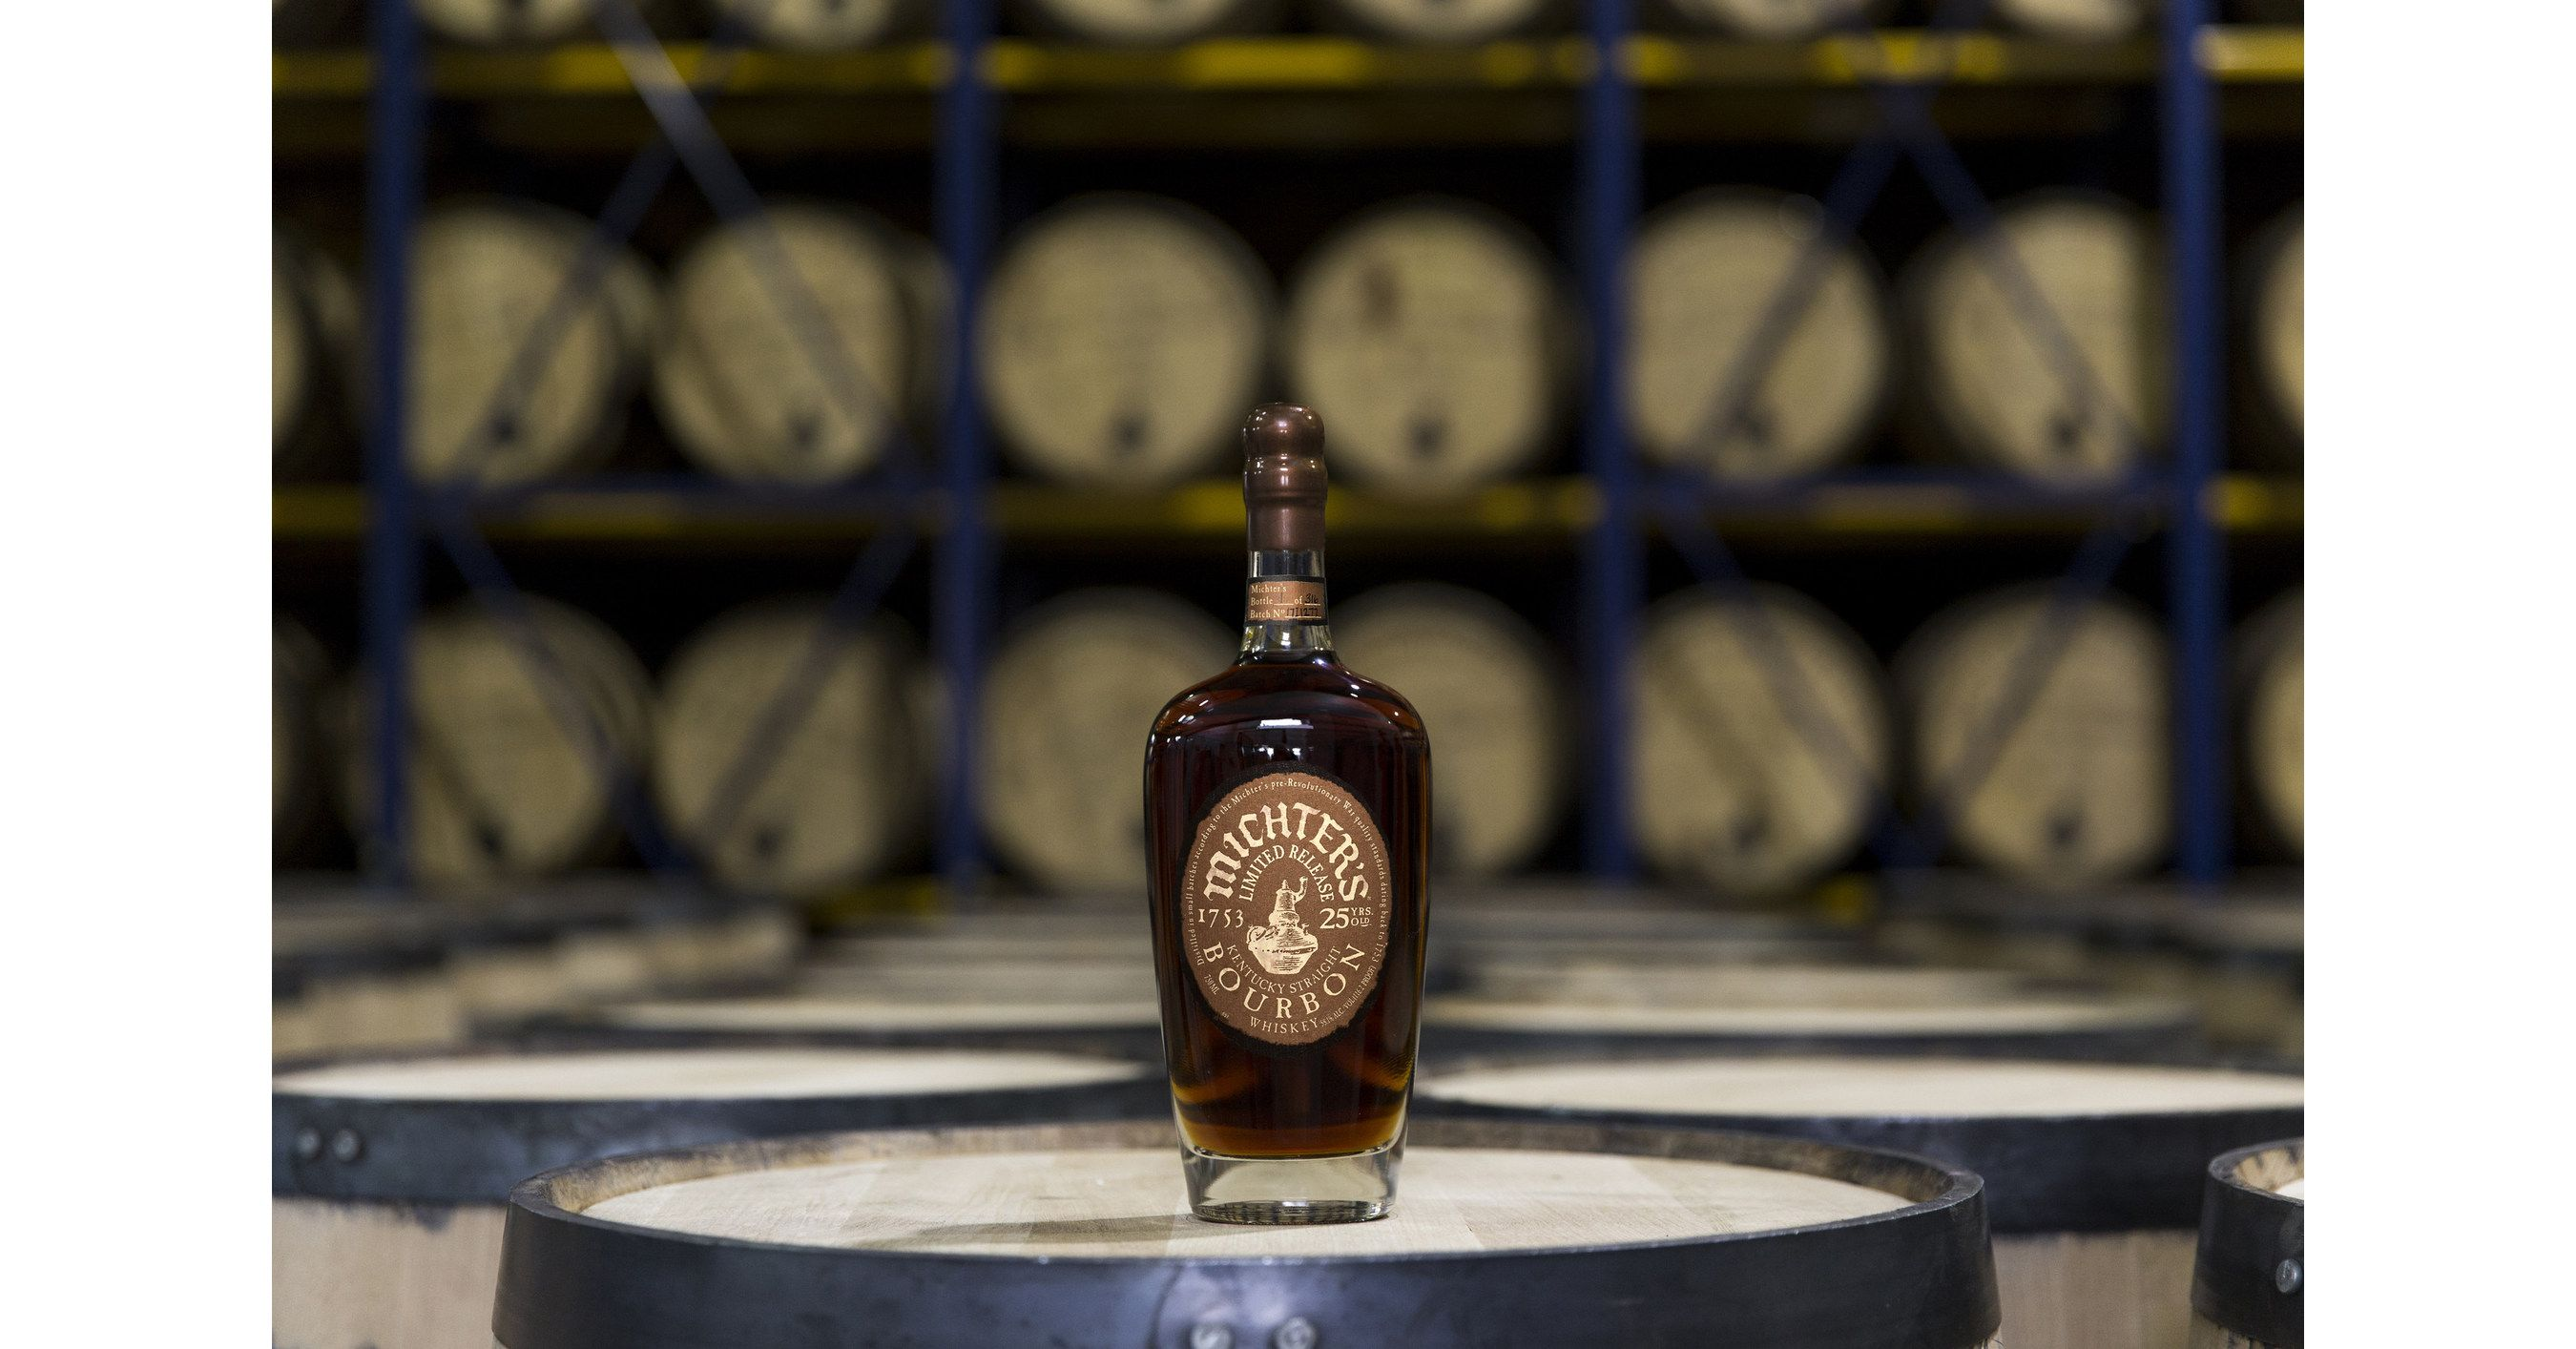 Michters announces first bottling of 25 year bourbon